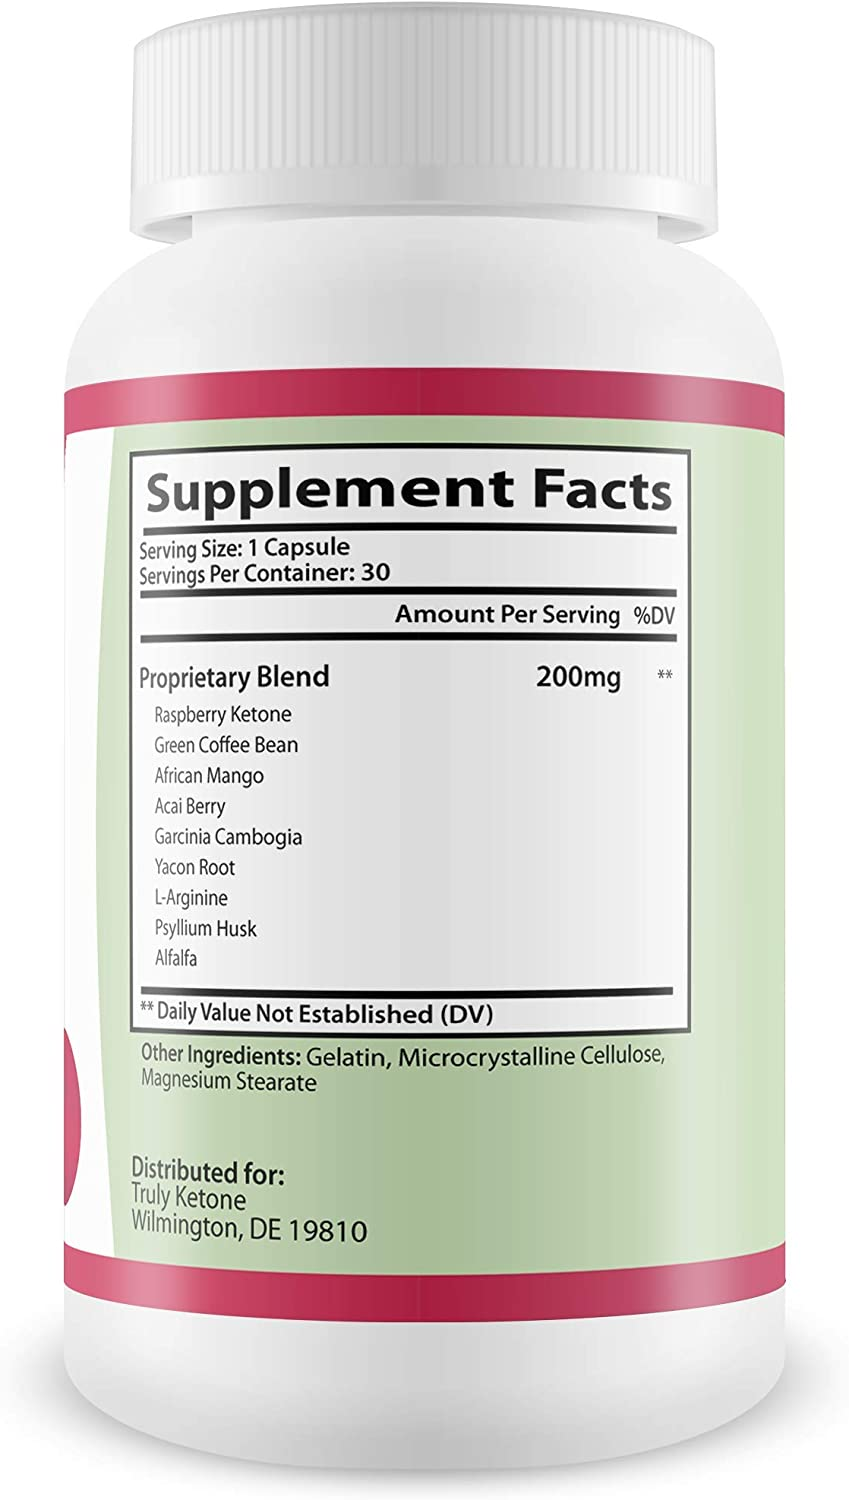 Amazon Com Truly Raspberry Ketones Capsules All Natural Weight Loss Supplement Max Strength Plus Appetite Suppressant Diet Pills Premium Lean Health Extract To Boost Energy Metabolism Health Personal Care